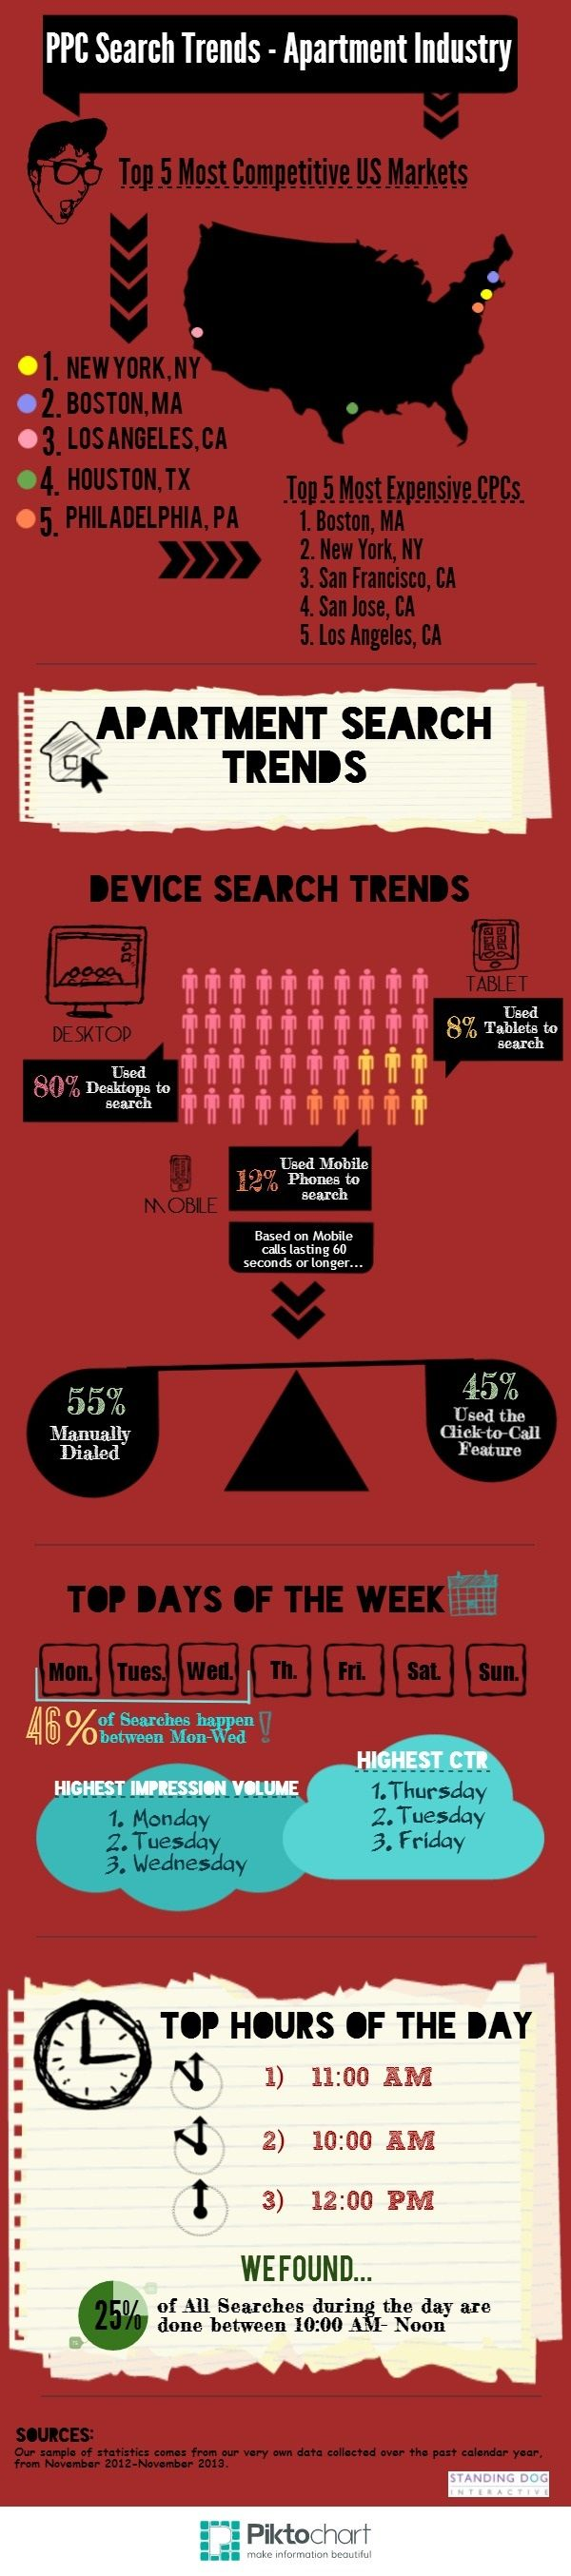 PPC - Apartment Search Trends [Infographic, Multifamily Marketing, SEM, Search Engine Marketing, #NerdMentor]